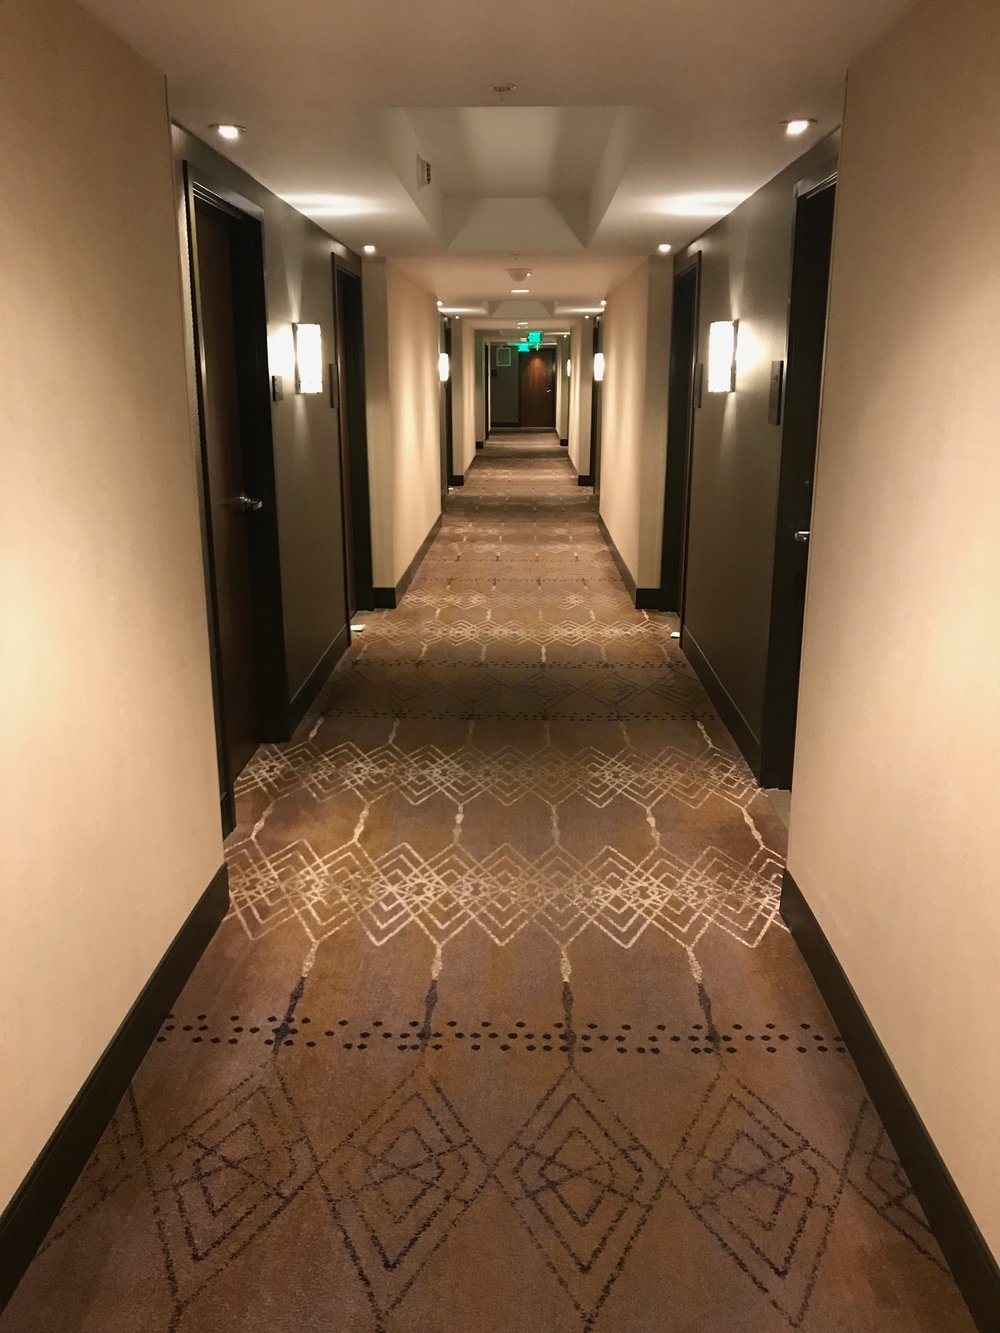 Hallway leading from the elevators to the guest rooms